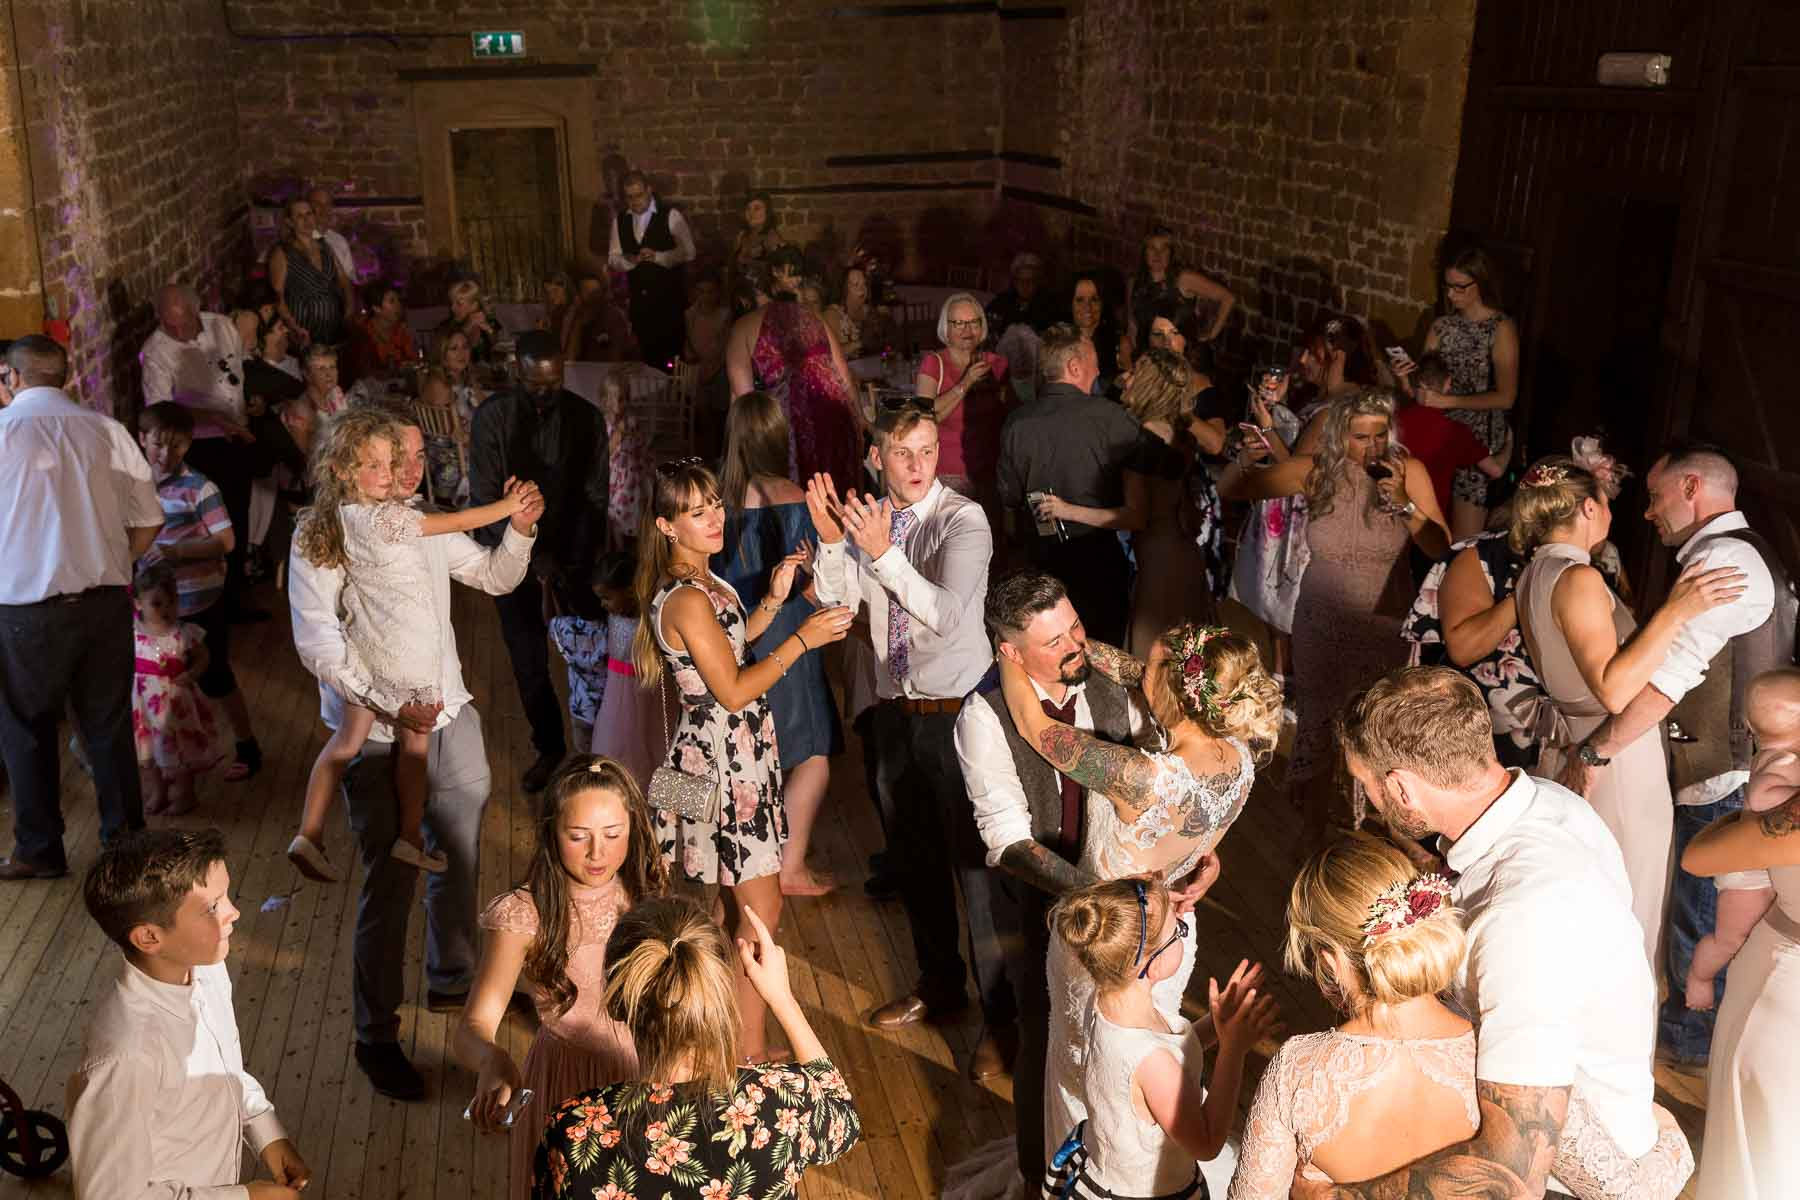 Wedding party on the dance floor at the barns hunsburry